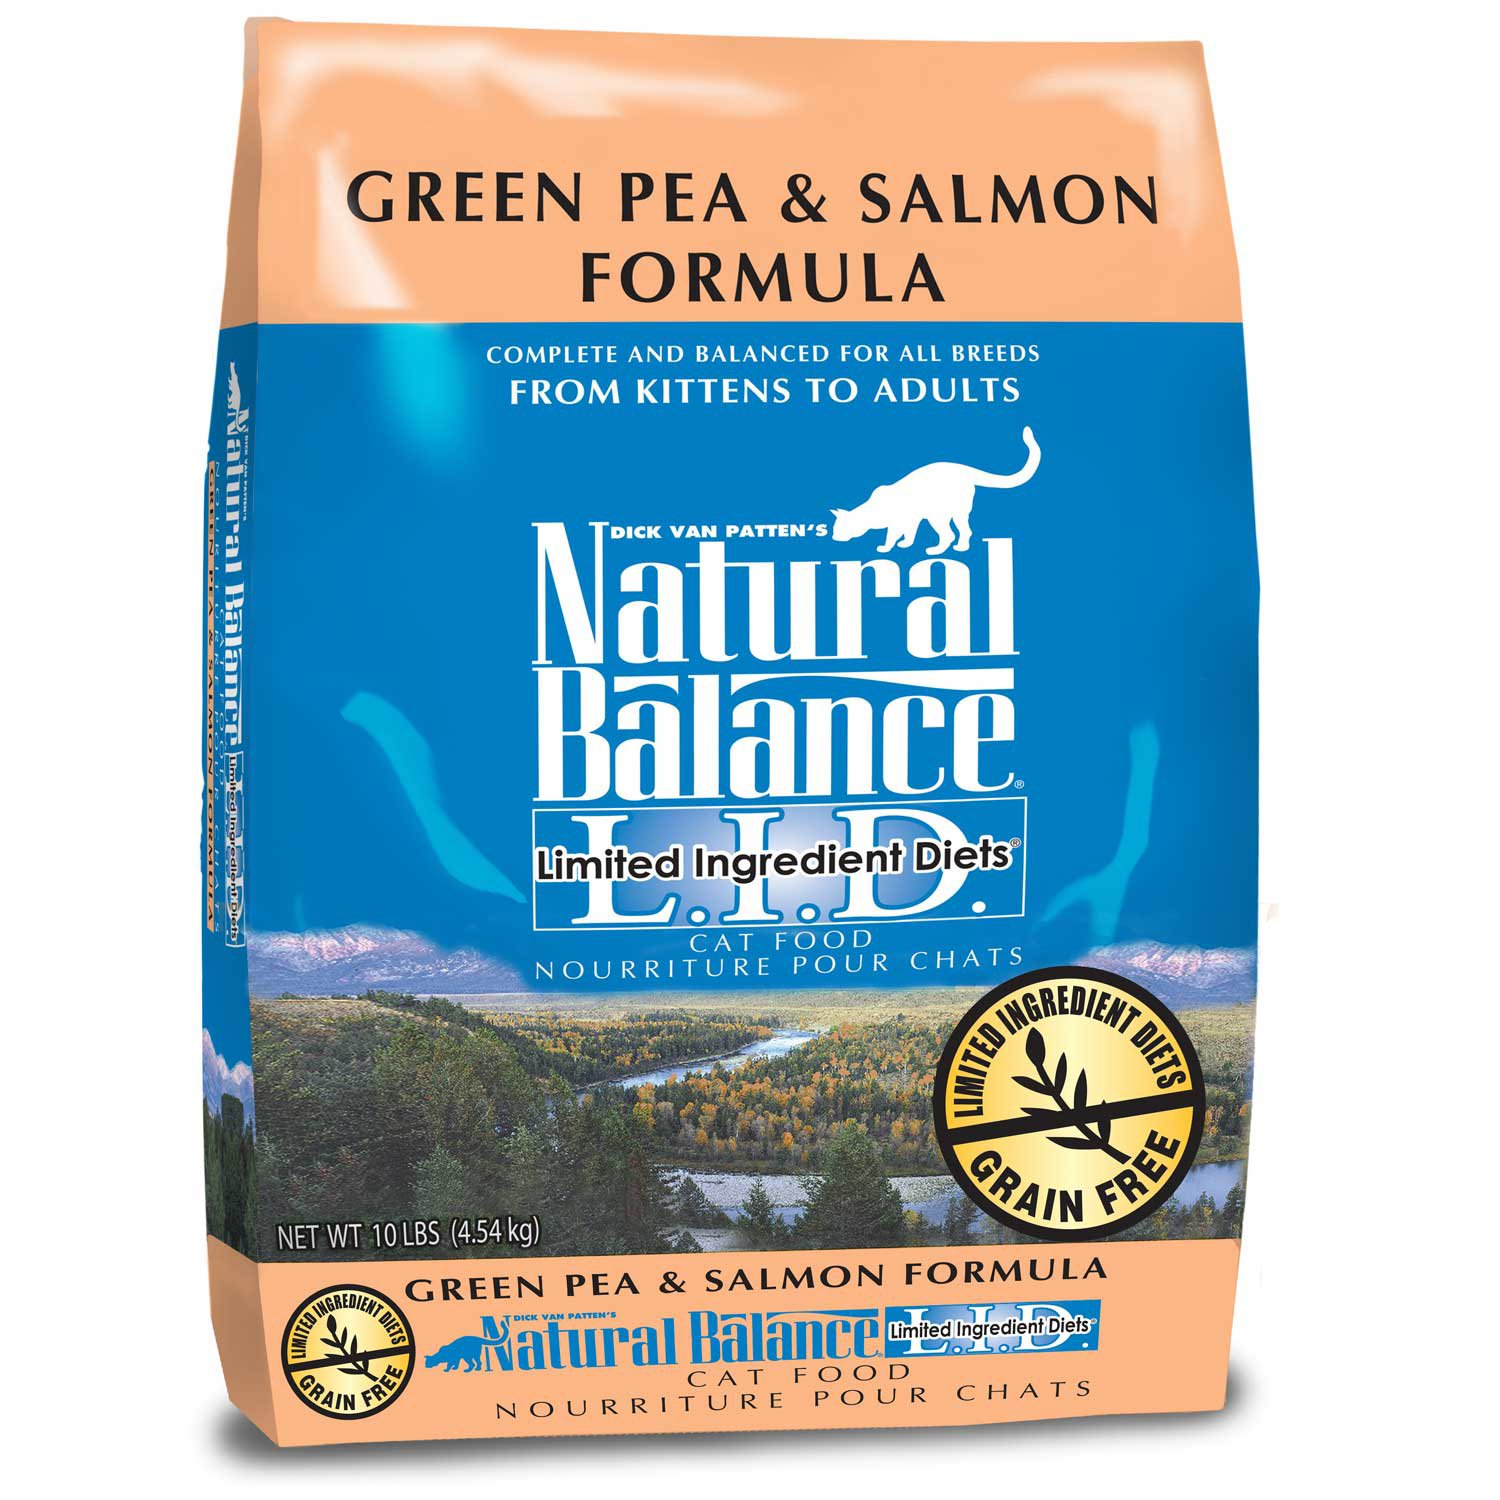 Natural Balance L.I.D. Limited Ingredient Diets Green Pea & Salmon Formula Dry Cat Food | Petco